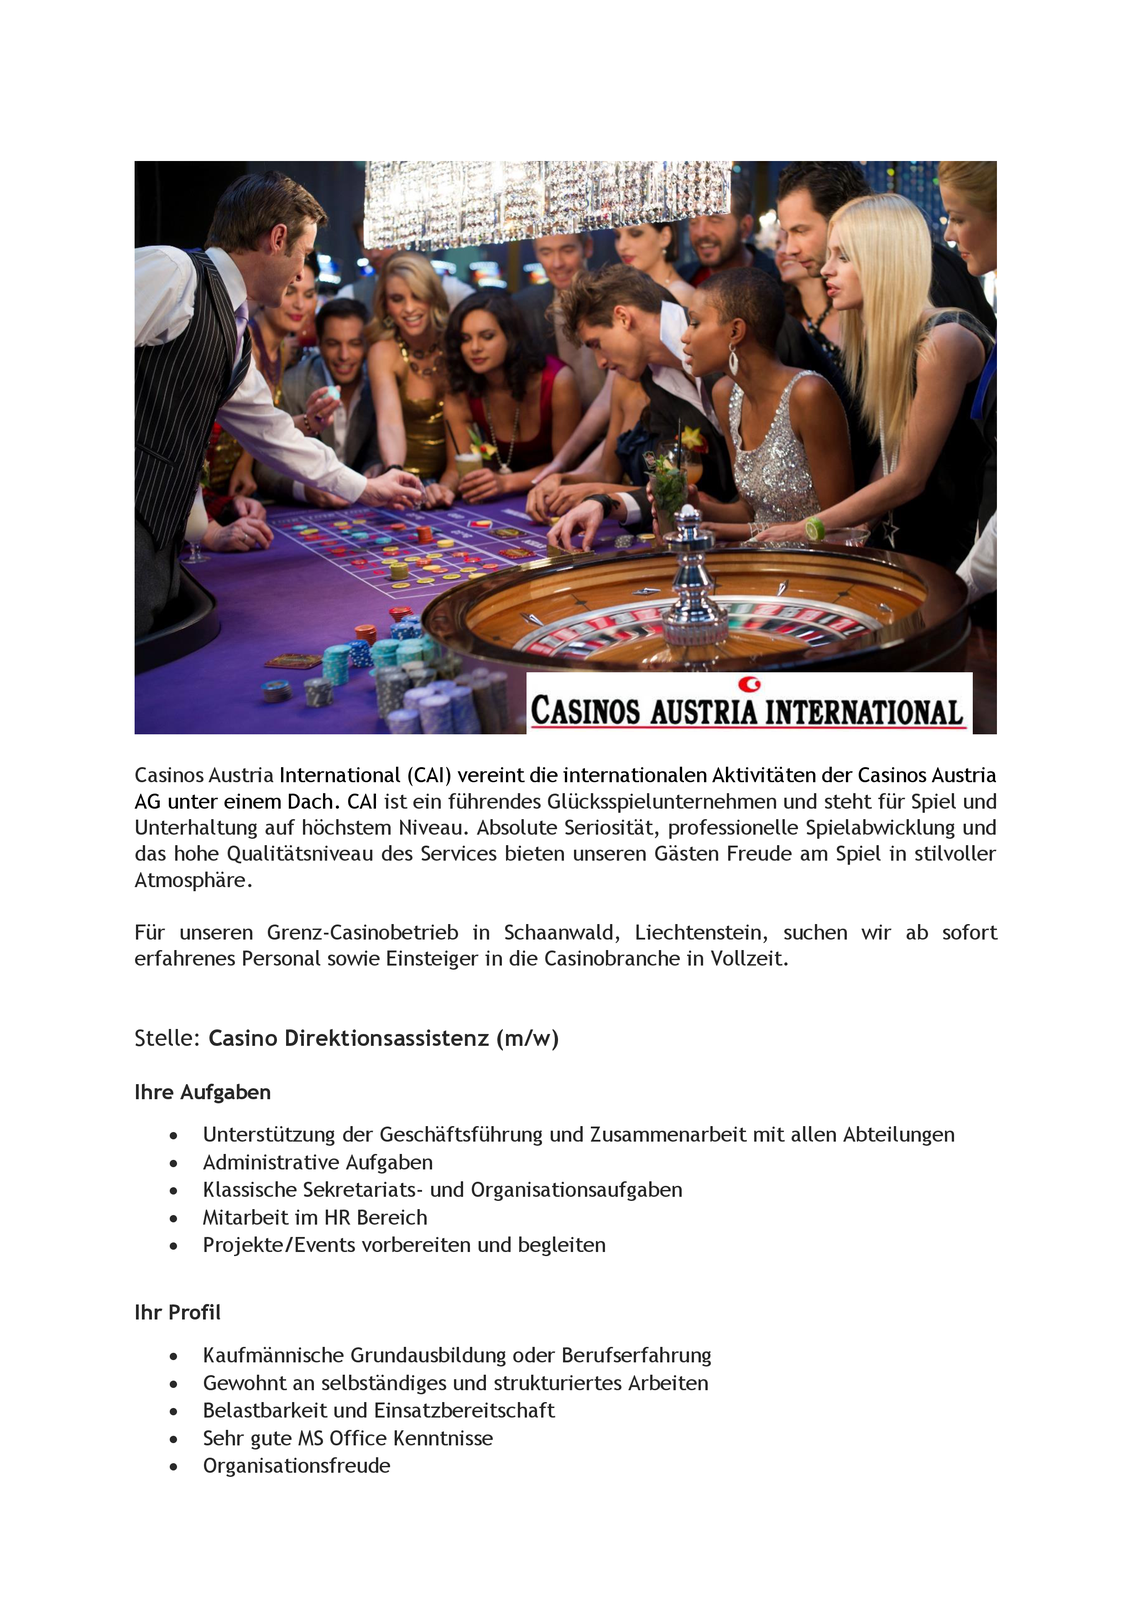 Casino Direktionsassistenz (m/w)